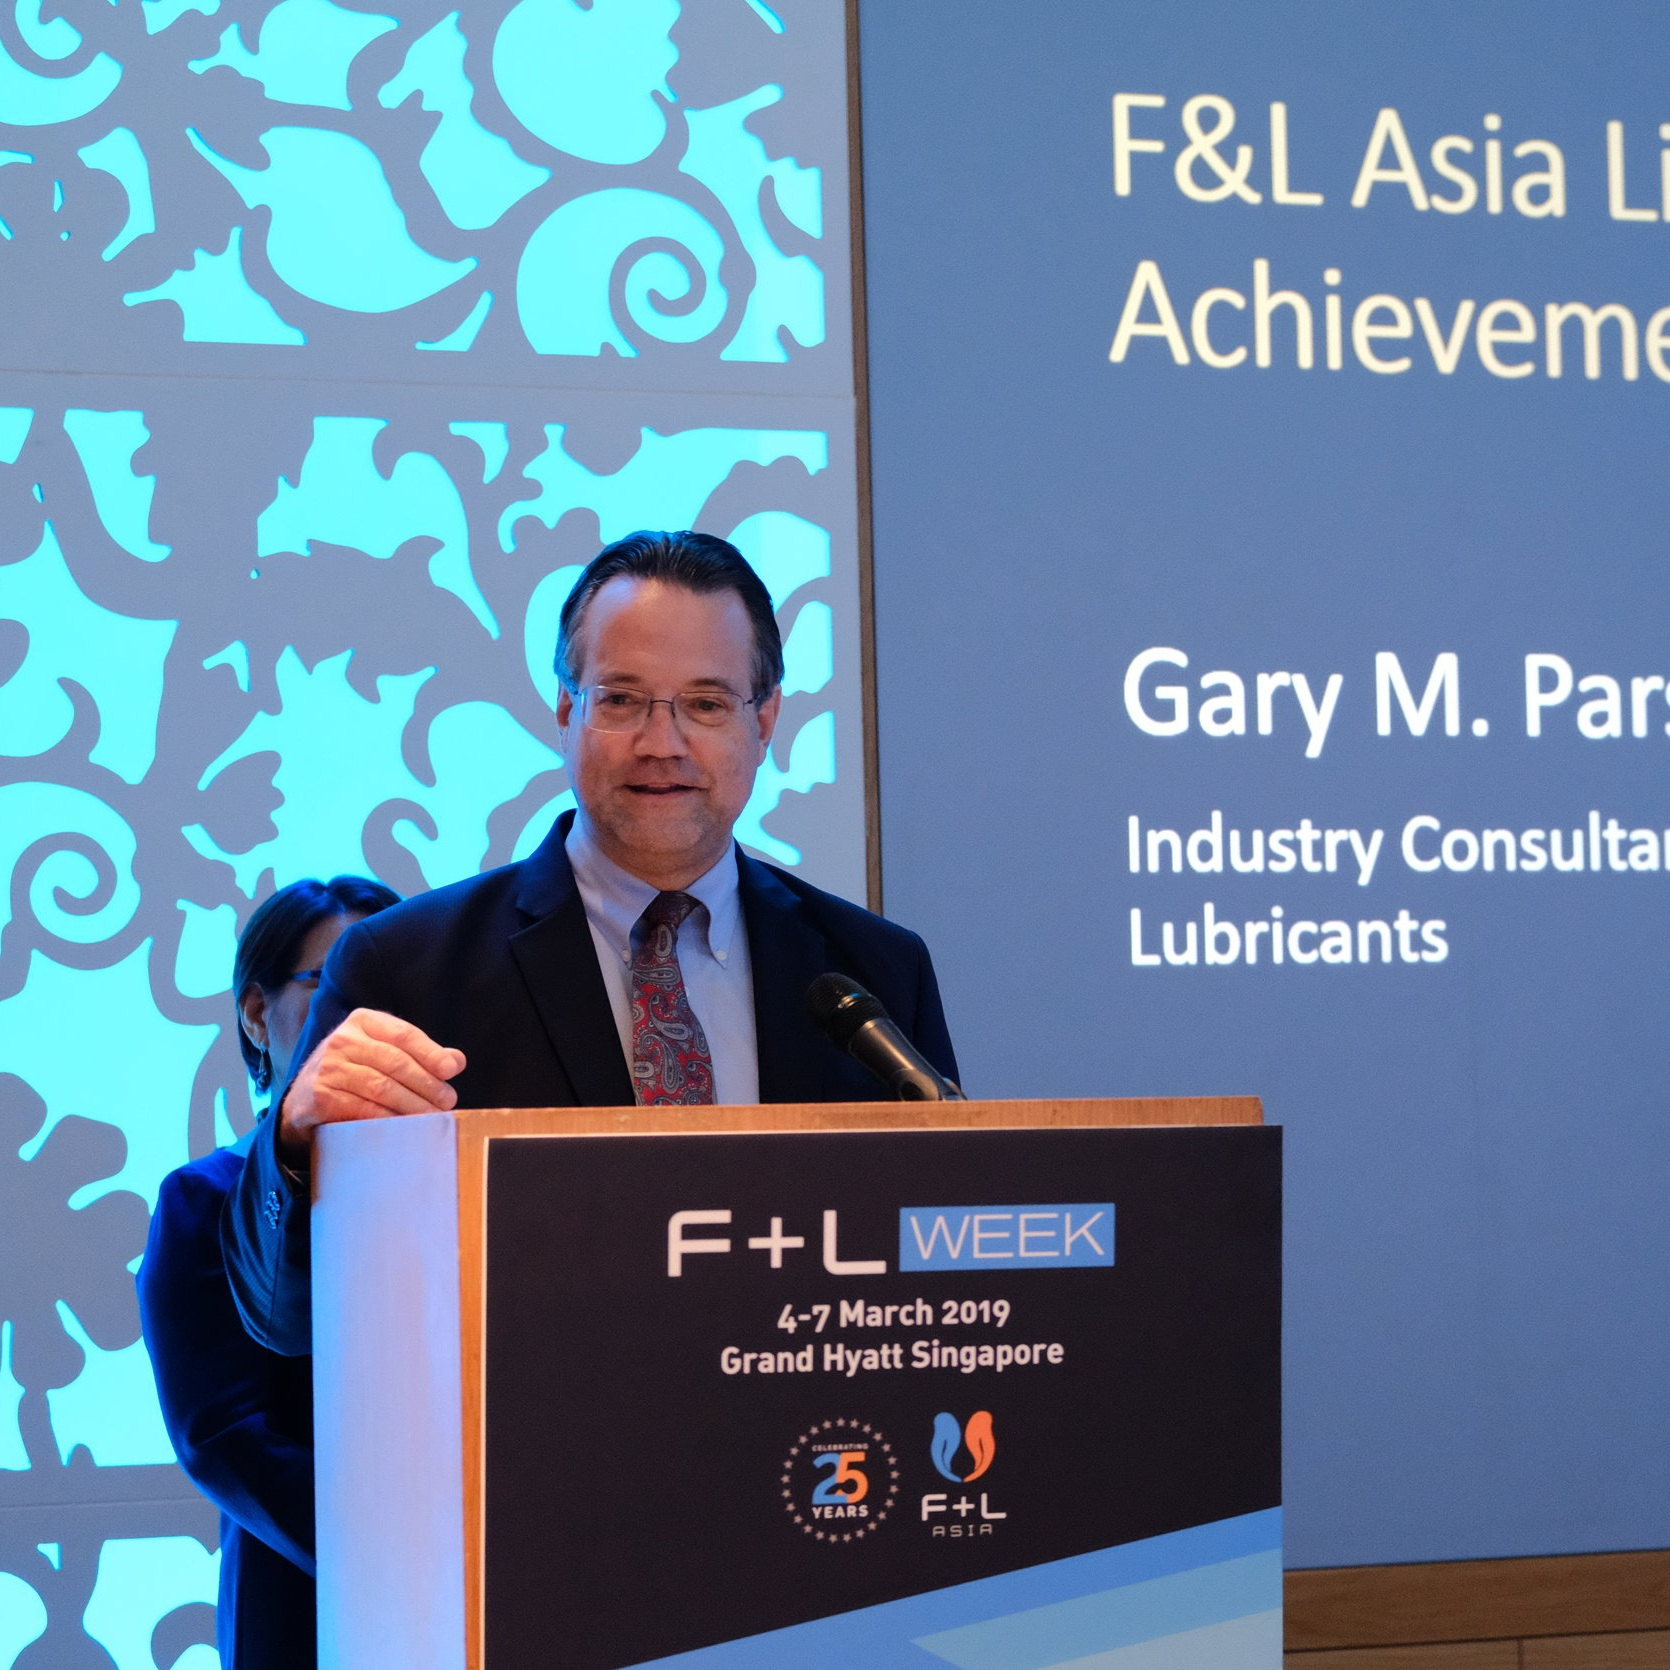 Gary M. Parsons, Industry Consultant